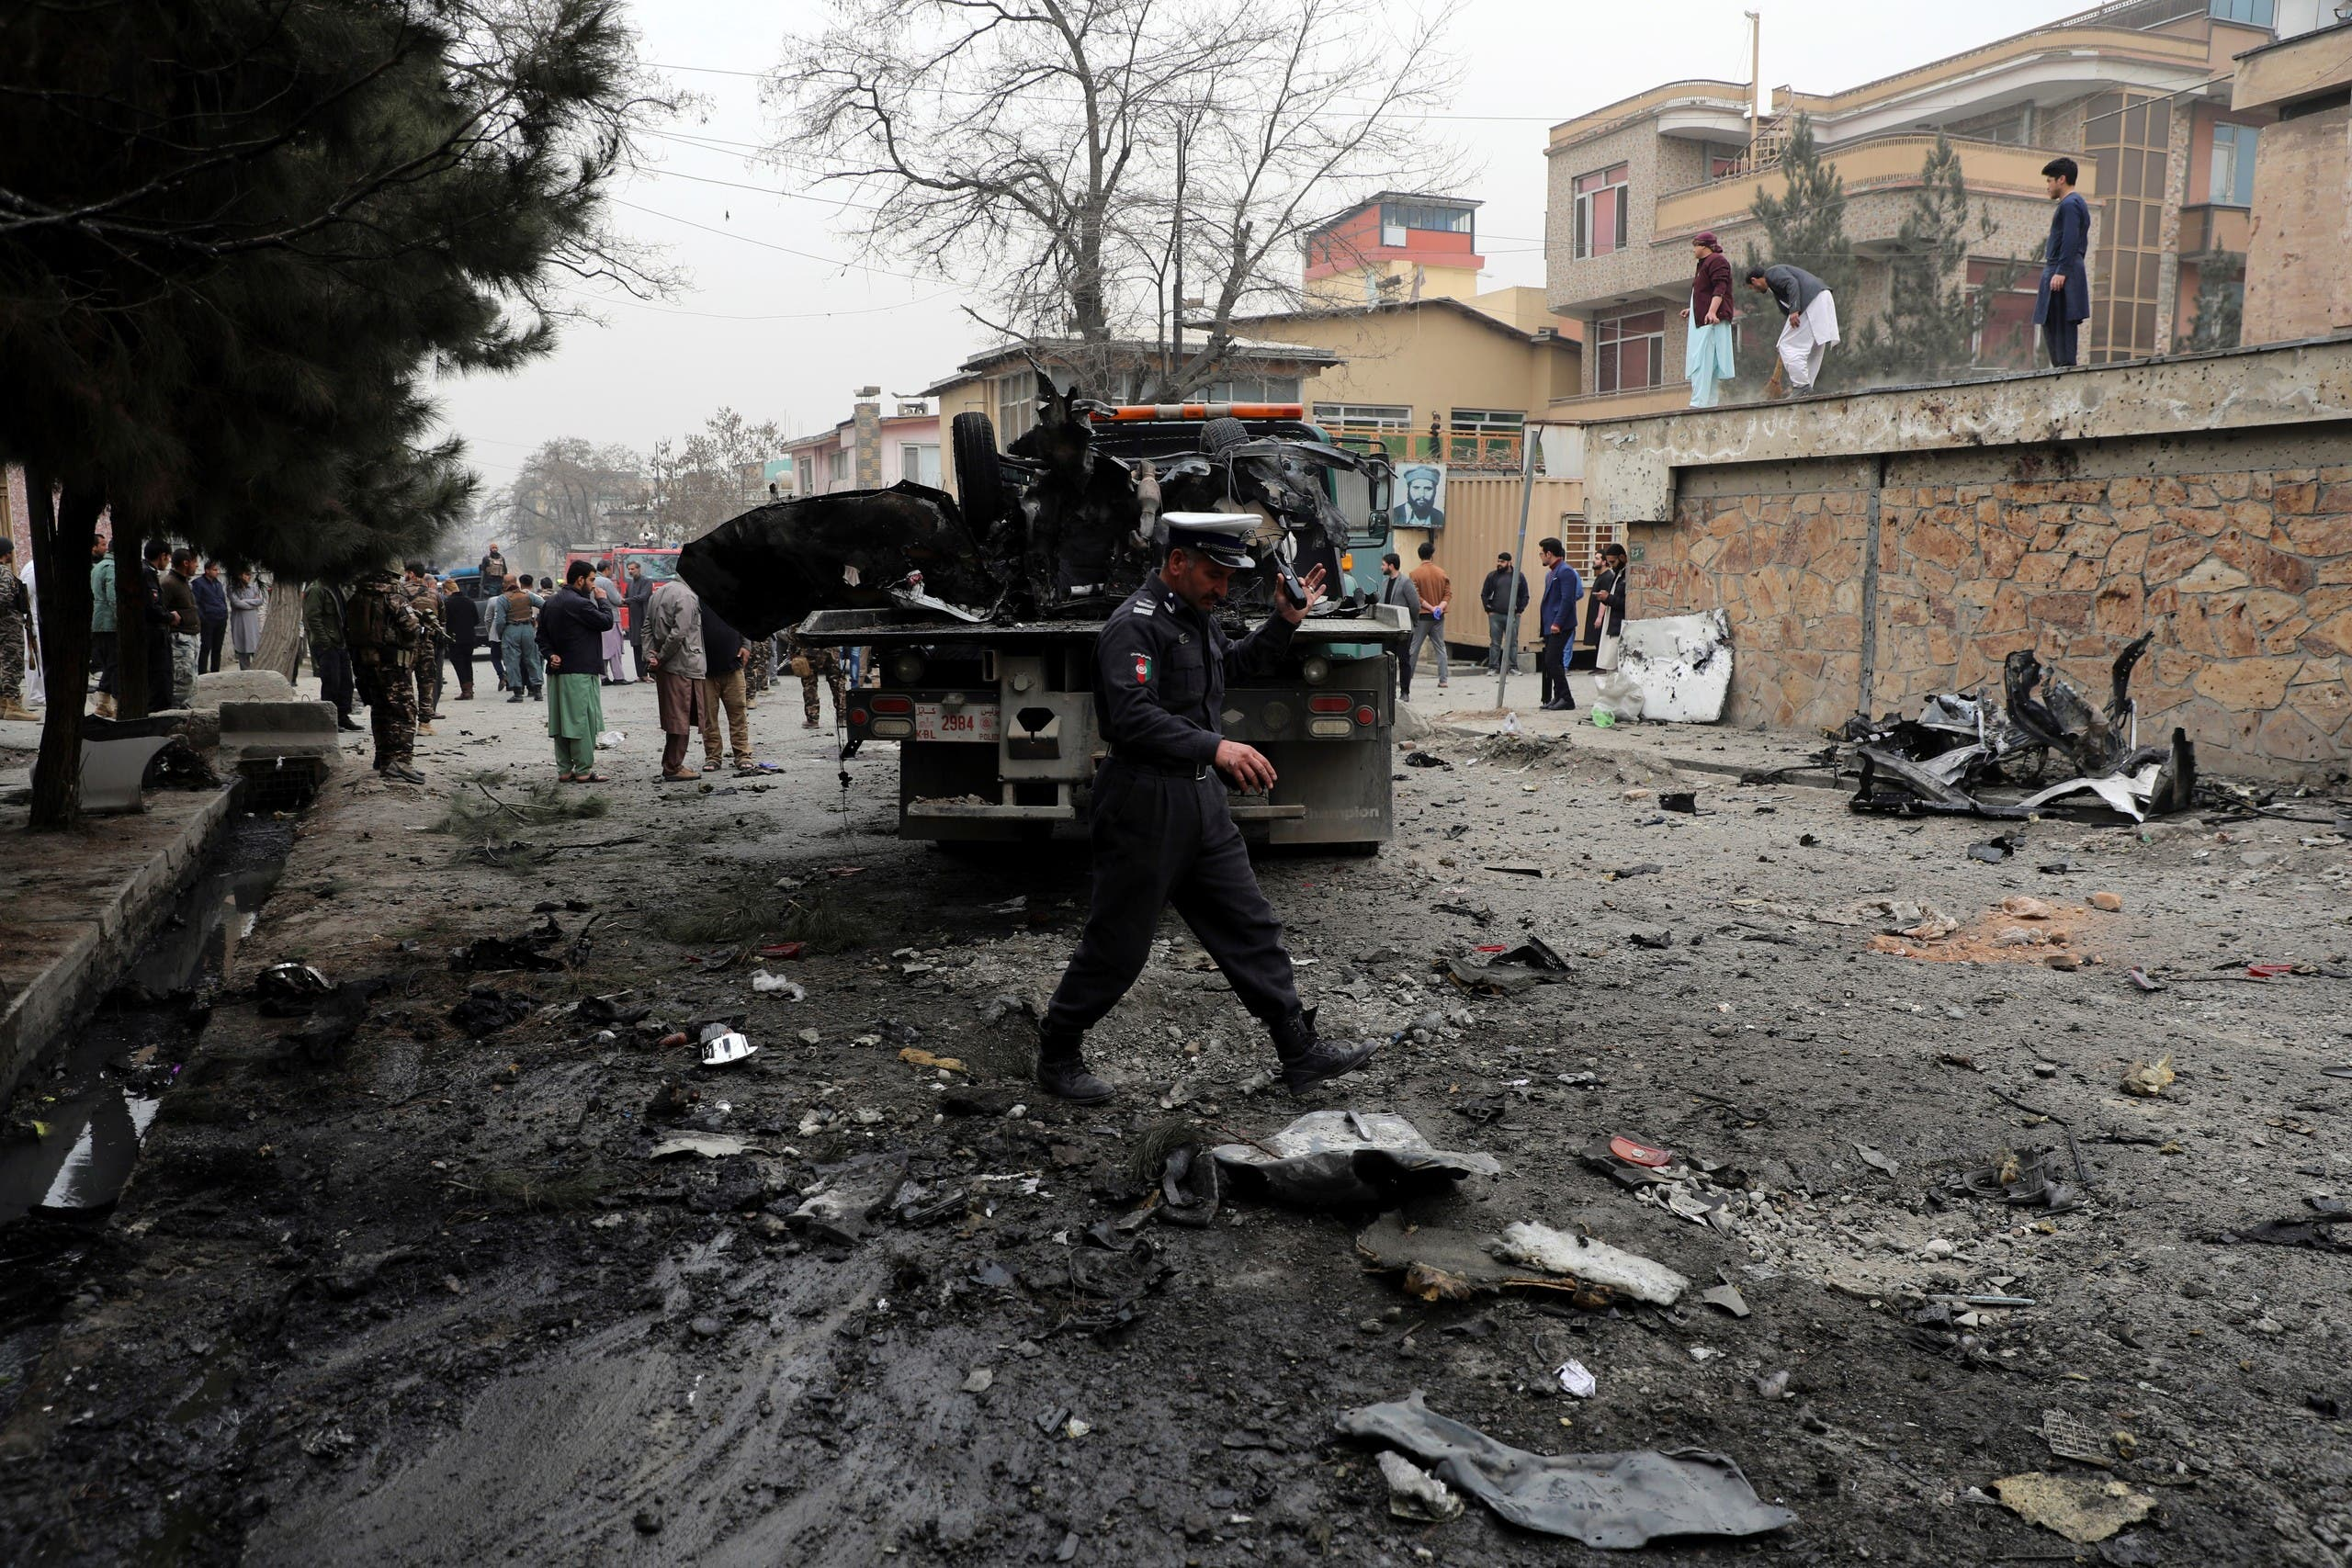 Security personnel inspect the site of a bomb attack in Kabul, Afghanistan, Saturday, Feb. 20, 2021. Three separate explosions in the capital Kabul on Saturday killed and wounded numerous people an Afghan official said. (AP)